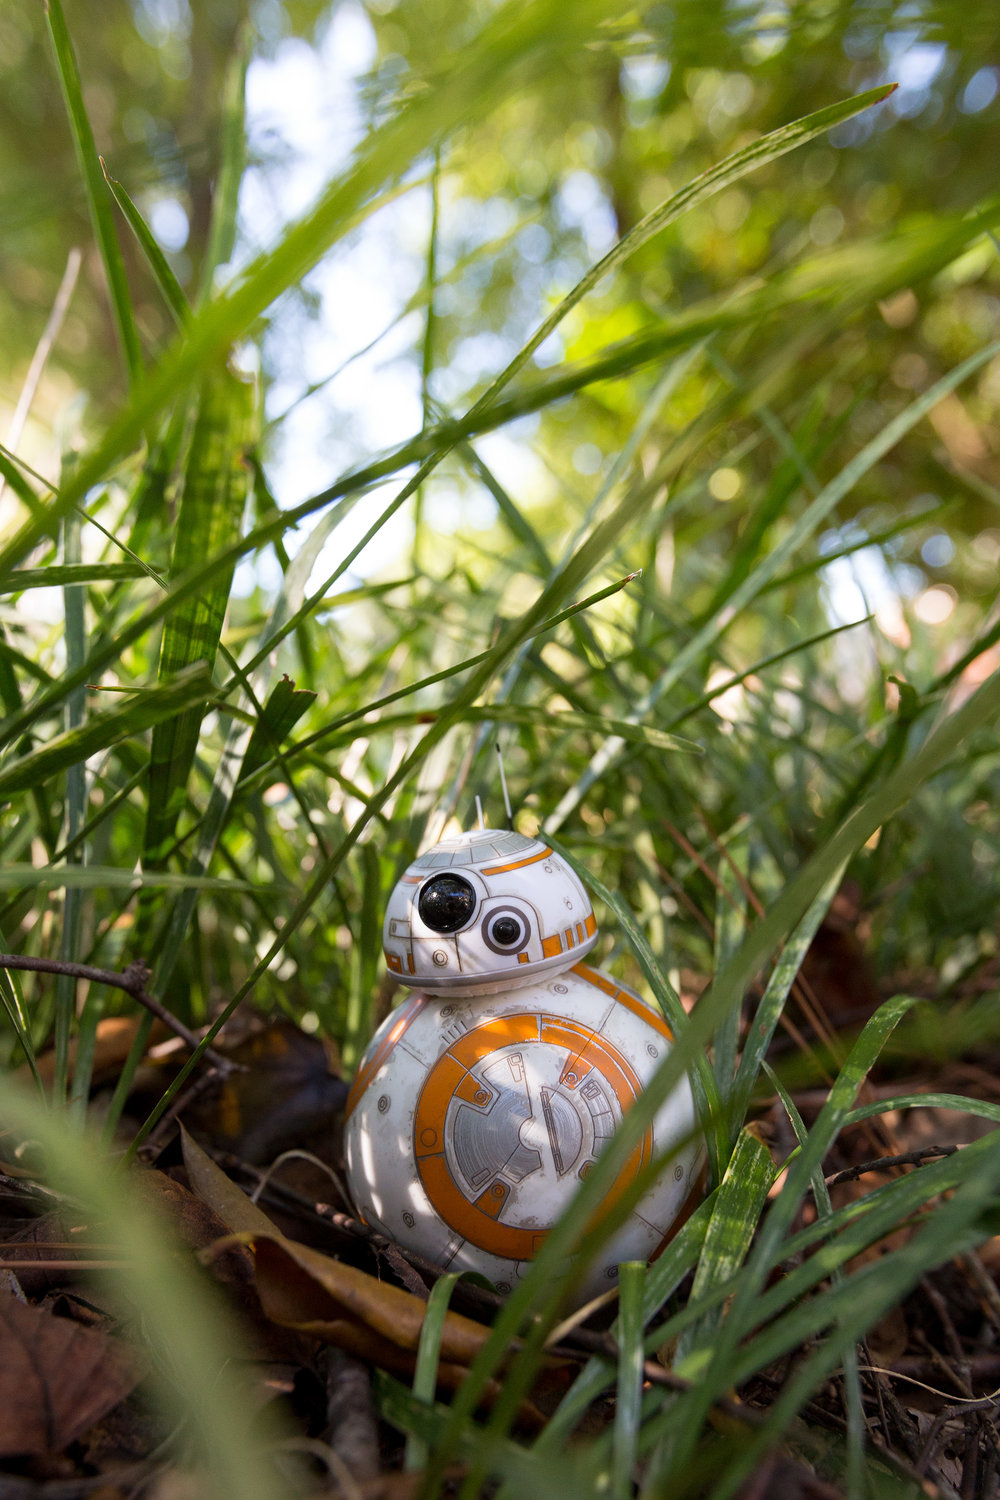 bb-8 rolling through.jpg